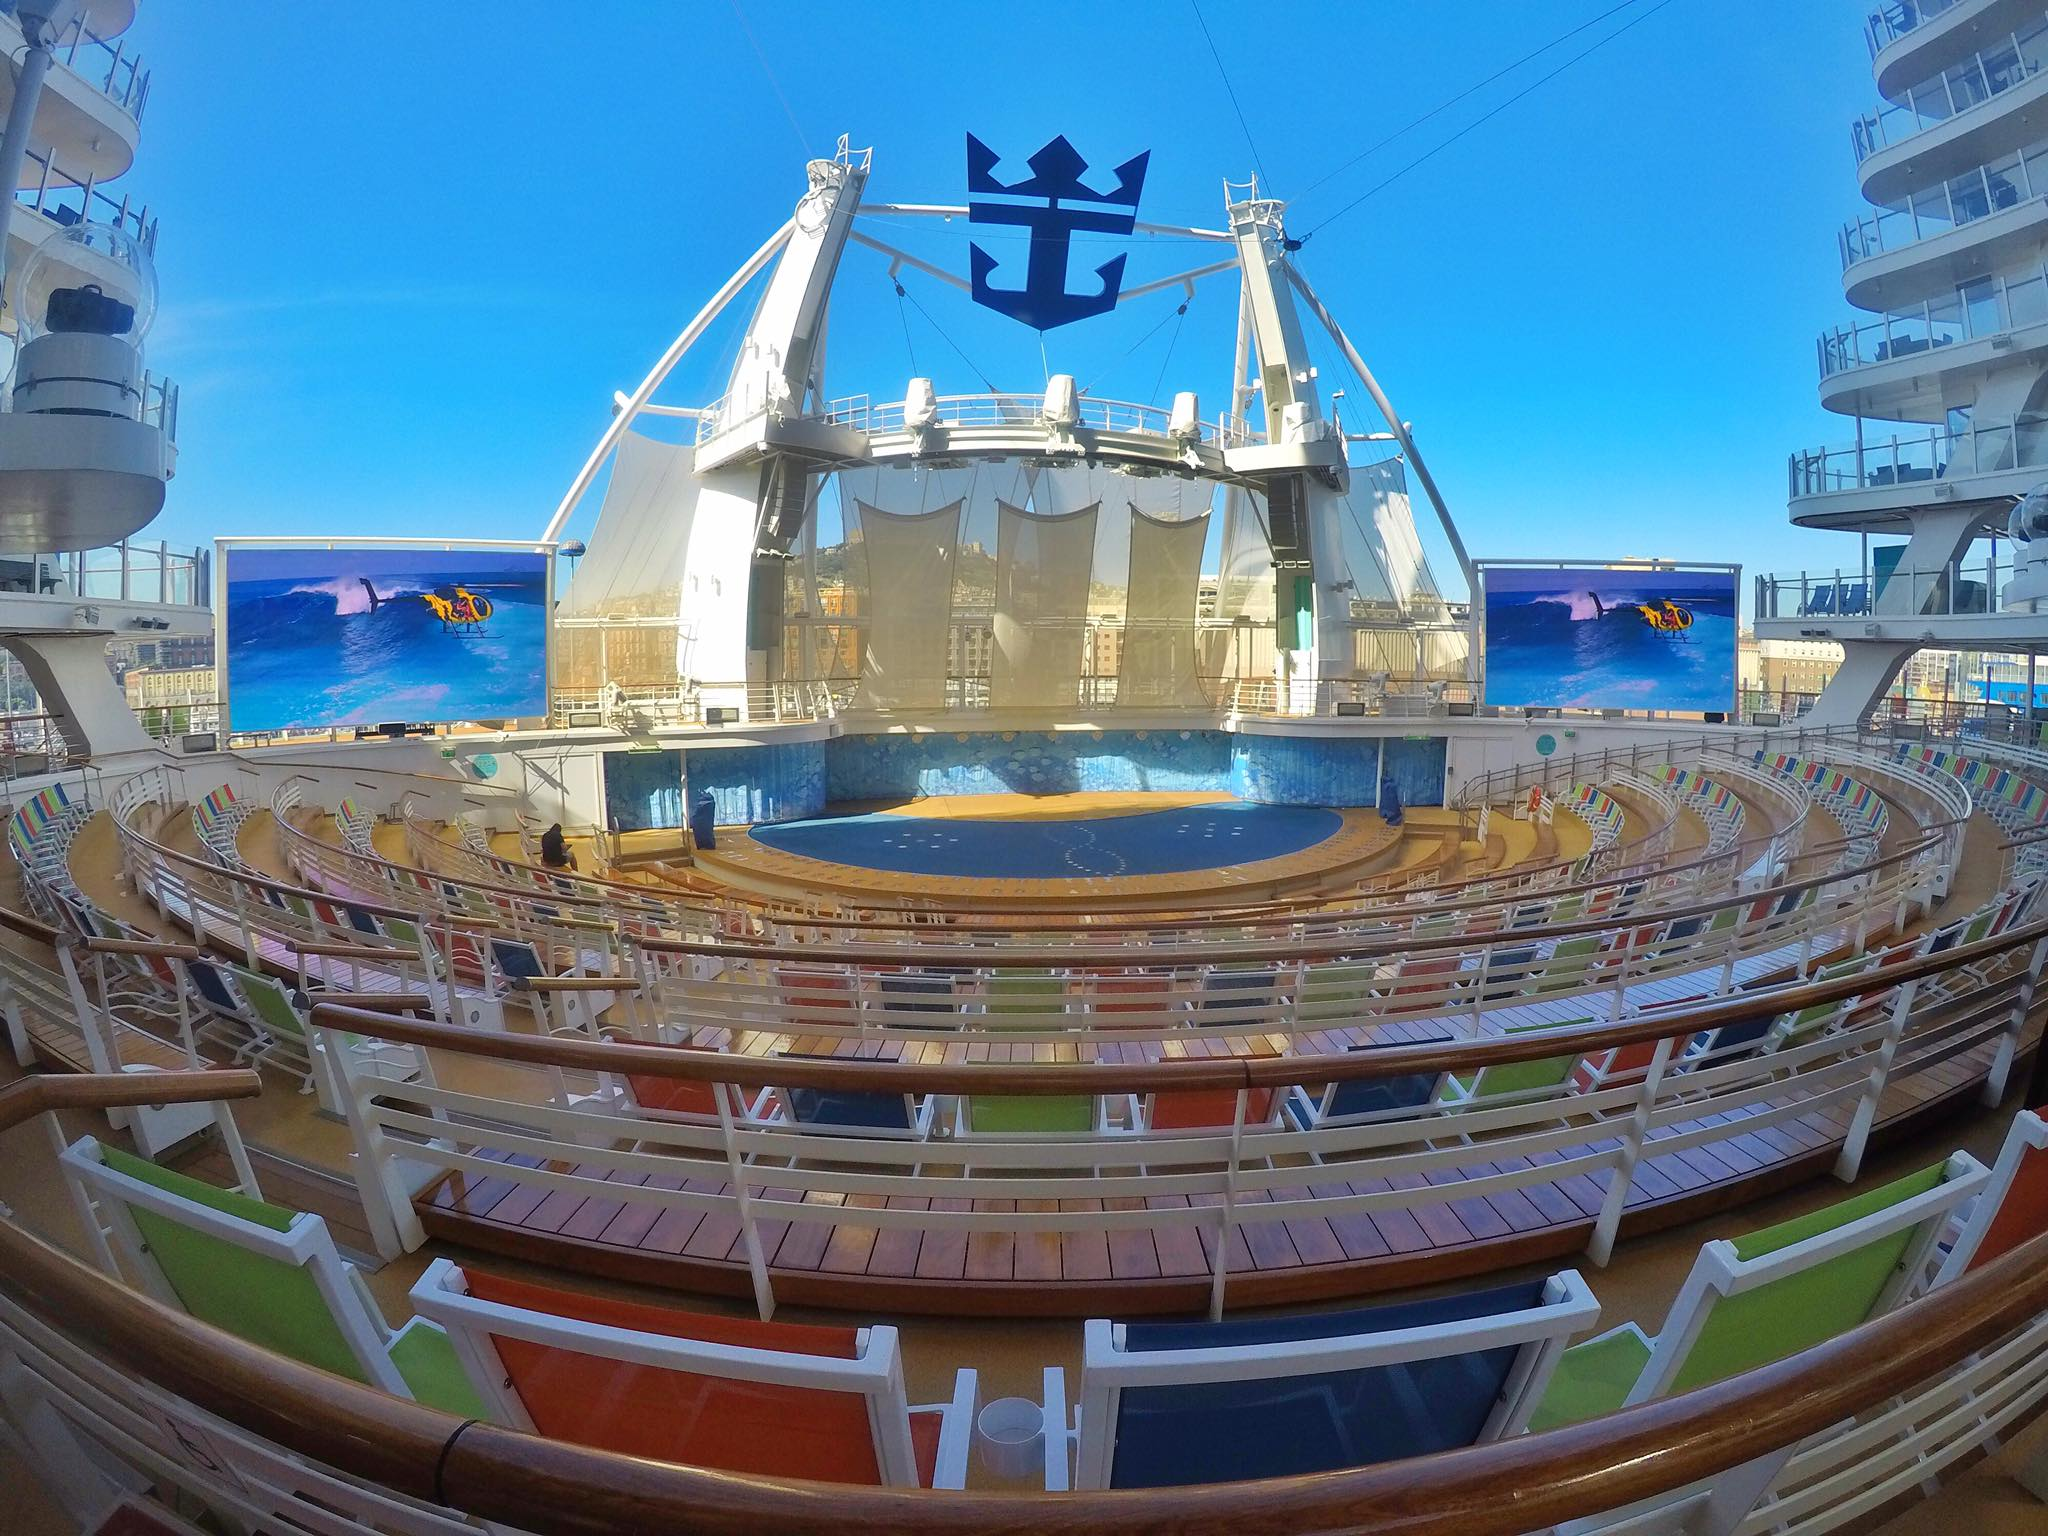 Kach Solo Travels Day 45: Day Pass Experience with Royal Caribbean's Symphony of the Seas in Naples, Italy